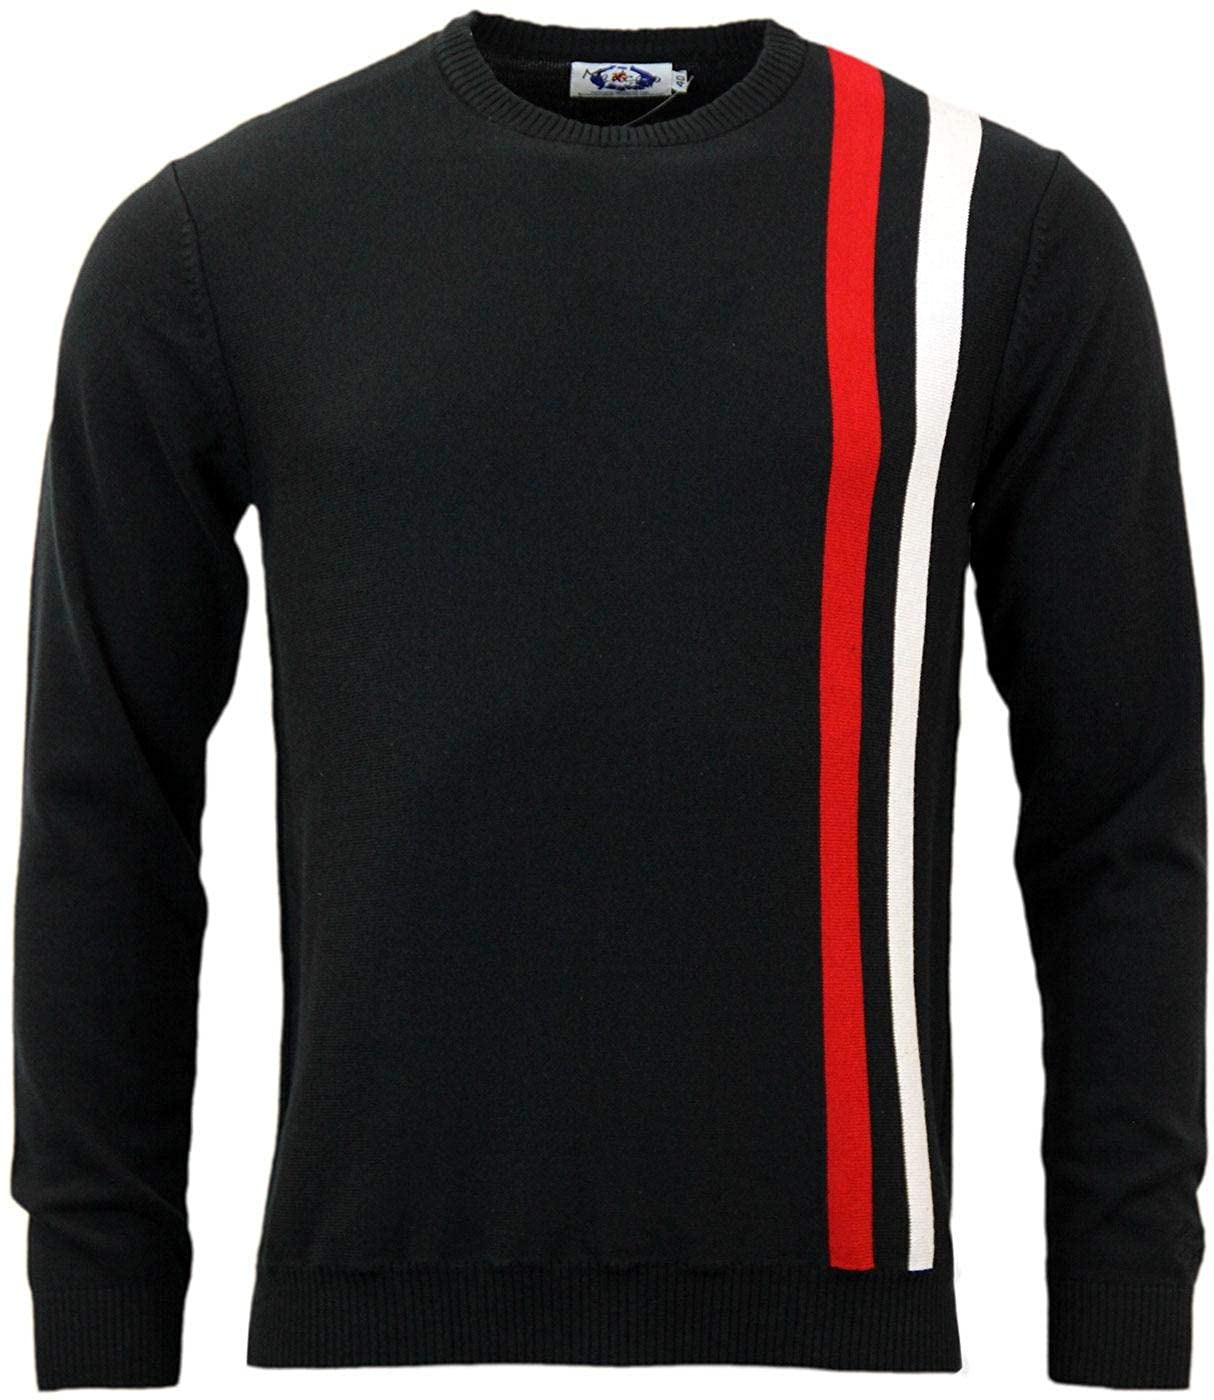 1960s – 70s Mens Shirts- Disco Shirts, Hippie Shirts  60s Mod Racing Jumper with Twin Stripes Madcap England Mens Retro £34.99 AT vintagedancer.com